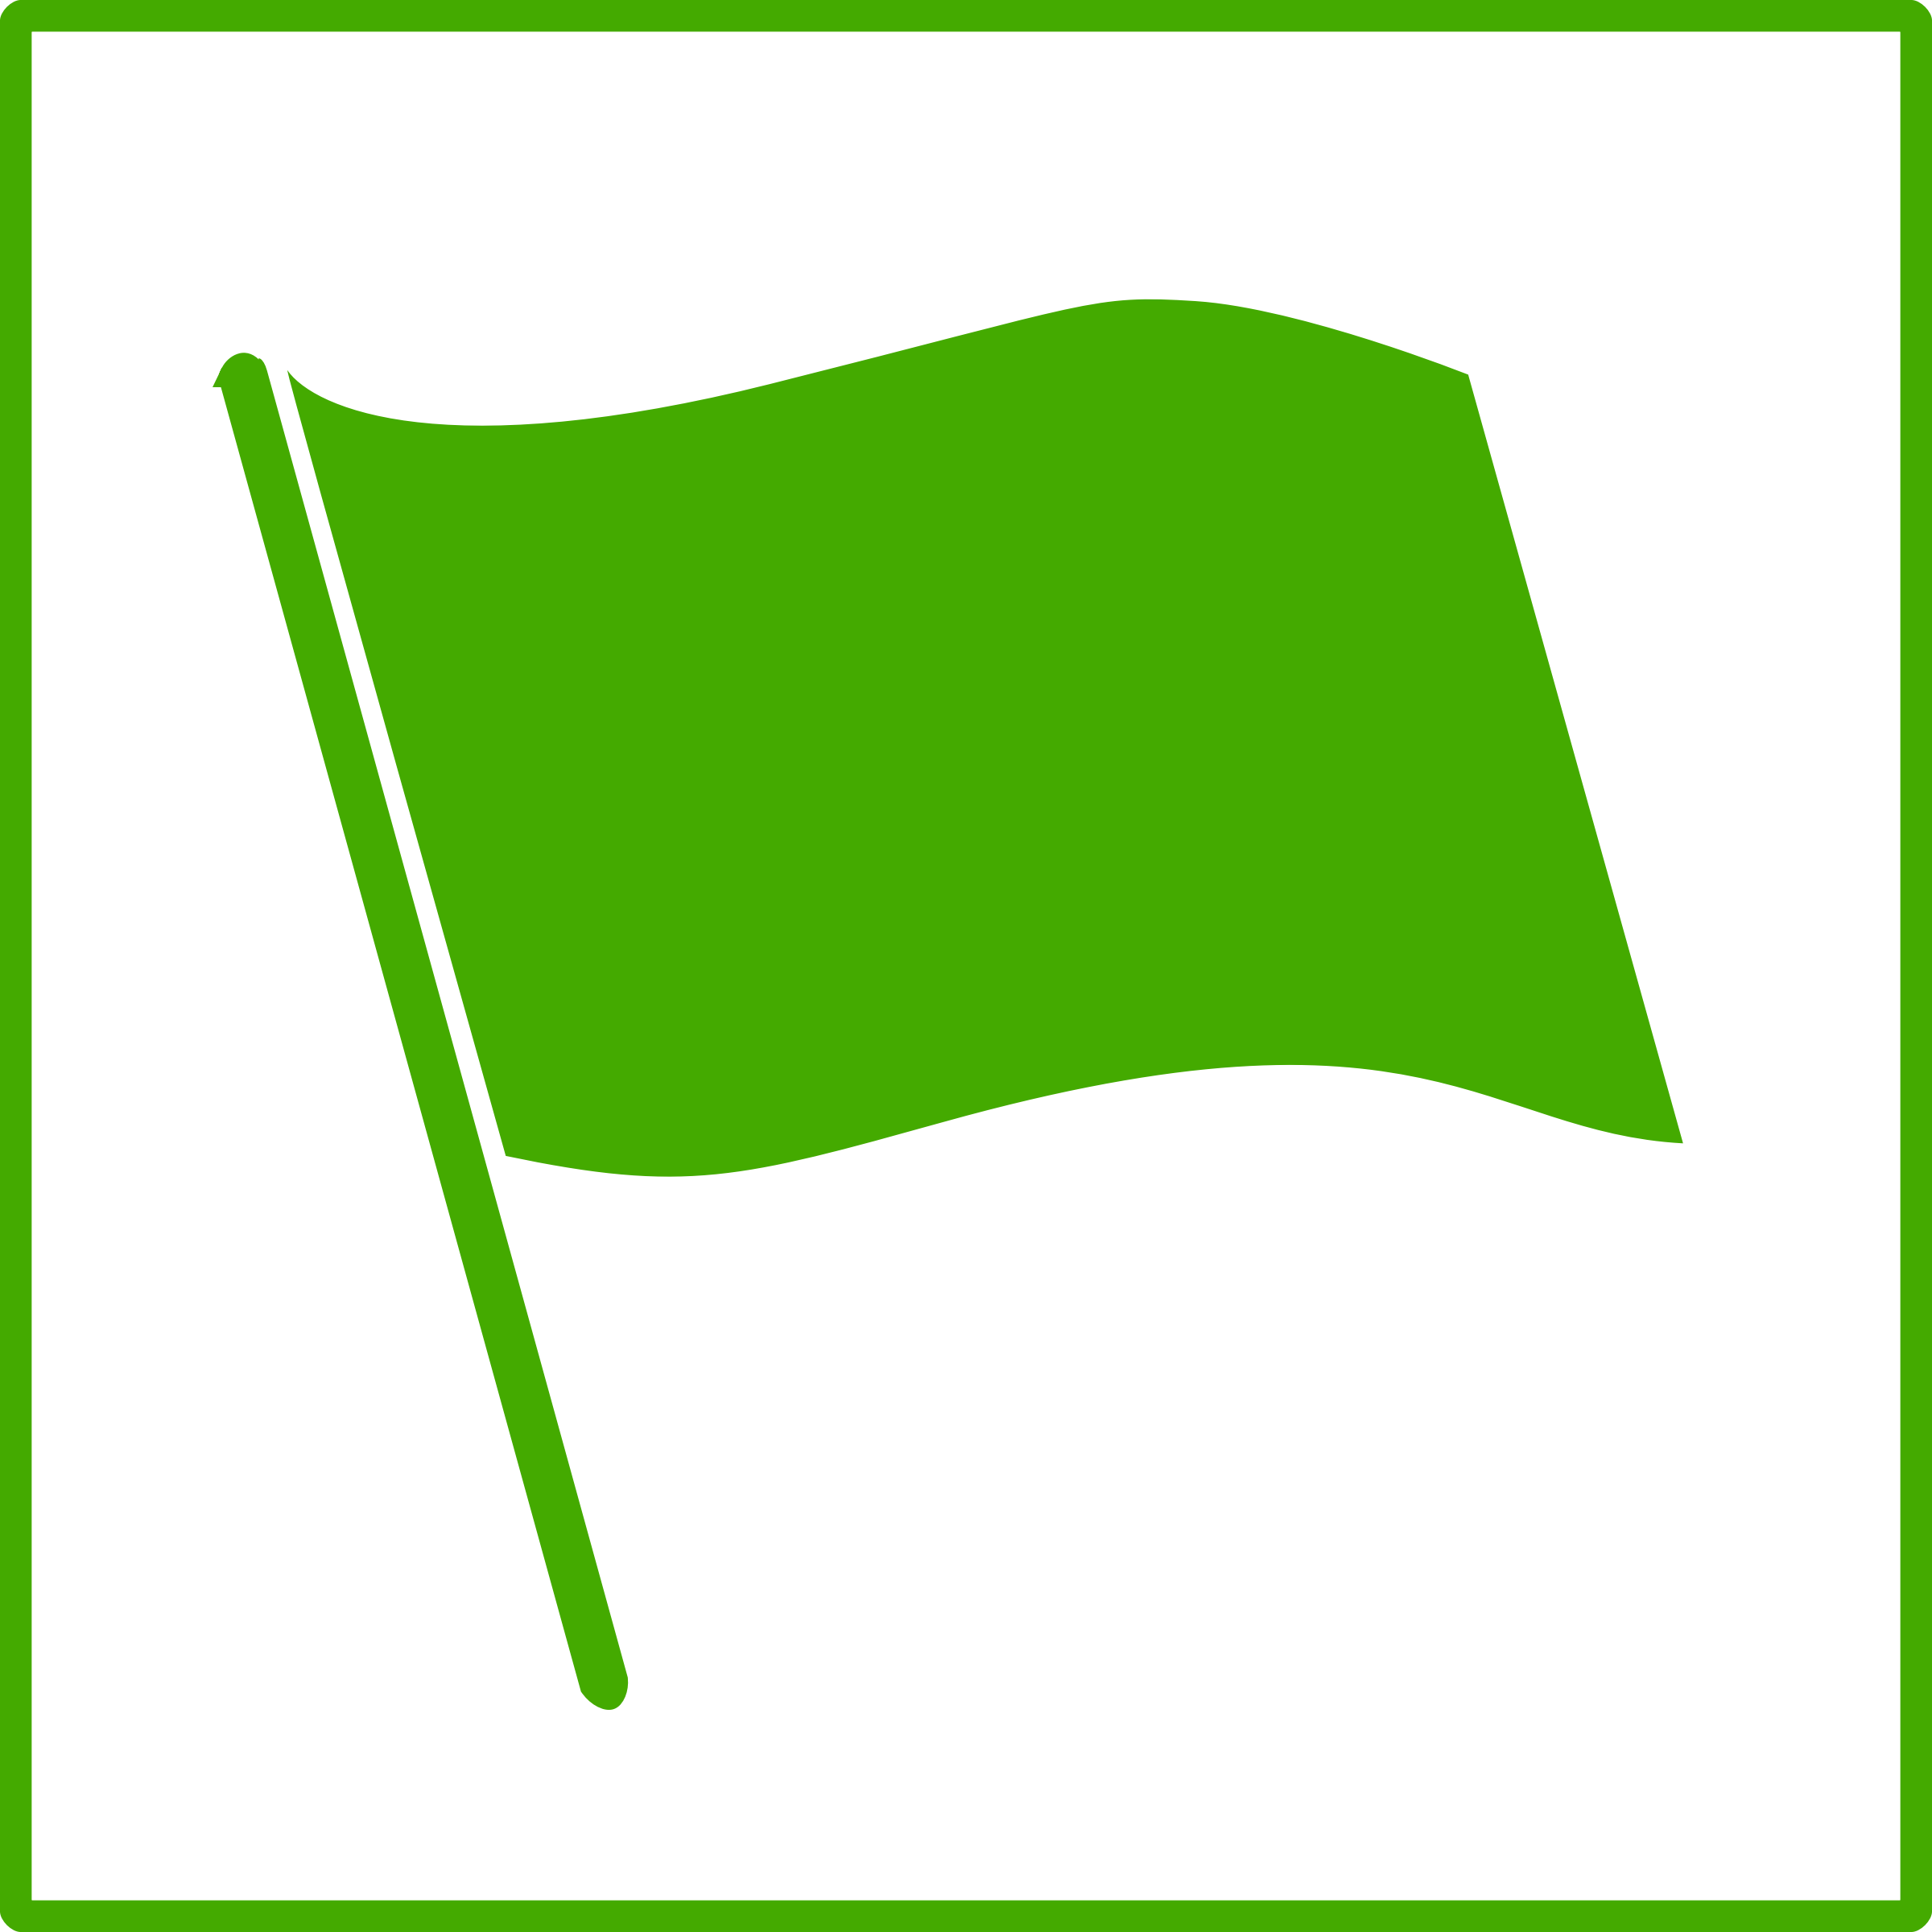 Green Flags Icon Png 2400x2400, Flags HD PNG Download